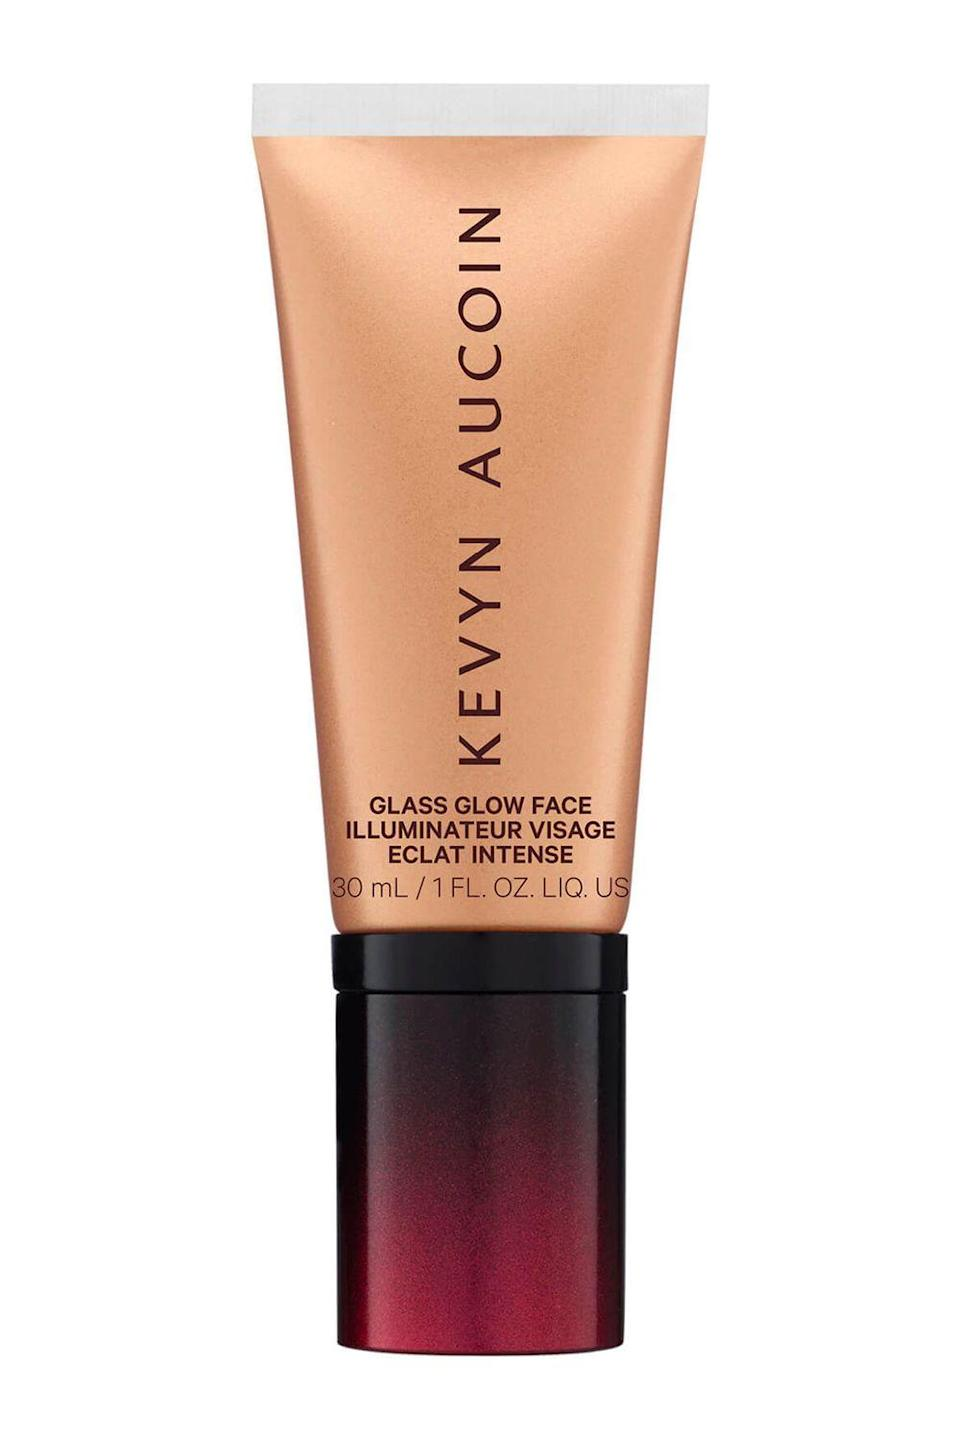 """<p><strong>Kevyn Aucoin</strong></p><p>bluemercury.com</p><p><strong>$32.00</strong></p><p><a href=""""https://go.redirectingat.com?id=74968X1596630&url=https%3A%2F%2Fbluemercury.com%2Fproducts%2Fkevyn-aucoin-glass-glow-face-liquid-illuminator&sref=https%3A%2F%2Fwww.cosmopolitan.com%2Fstyle-beauty%2Fbeauty%2Fg36460987%2Fbest-face-gloss%2F"""" rel=""""nofollow noopener"""" target=""""_blank"""" data-ylk=""""slk:Shop Now"""" class=""""link rapid-noclick-resp"""">Shop Now</a></p><p>Think of this option from Kevyn Aucoin has a highlighter-gloss-<a href=""""https://www.cosmopolitan.com/style-beauty/beauty/g19505894/best-bronzer-makeup/"""" rel=""""nofollow noopener"""" target=""""_blank"""" data-ylk=""""slk:bronzer"""" class=""""link rapid-noclick-resp"""">bronzer</a> hybrid. It gives skin that glass-like glow you'd expect from a highlighter or face gloss, but thanks to its bronze pigments, it also <strong>instantly warms up your skin tone</strong> too.</p>"""